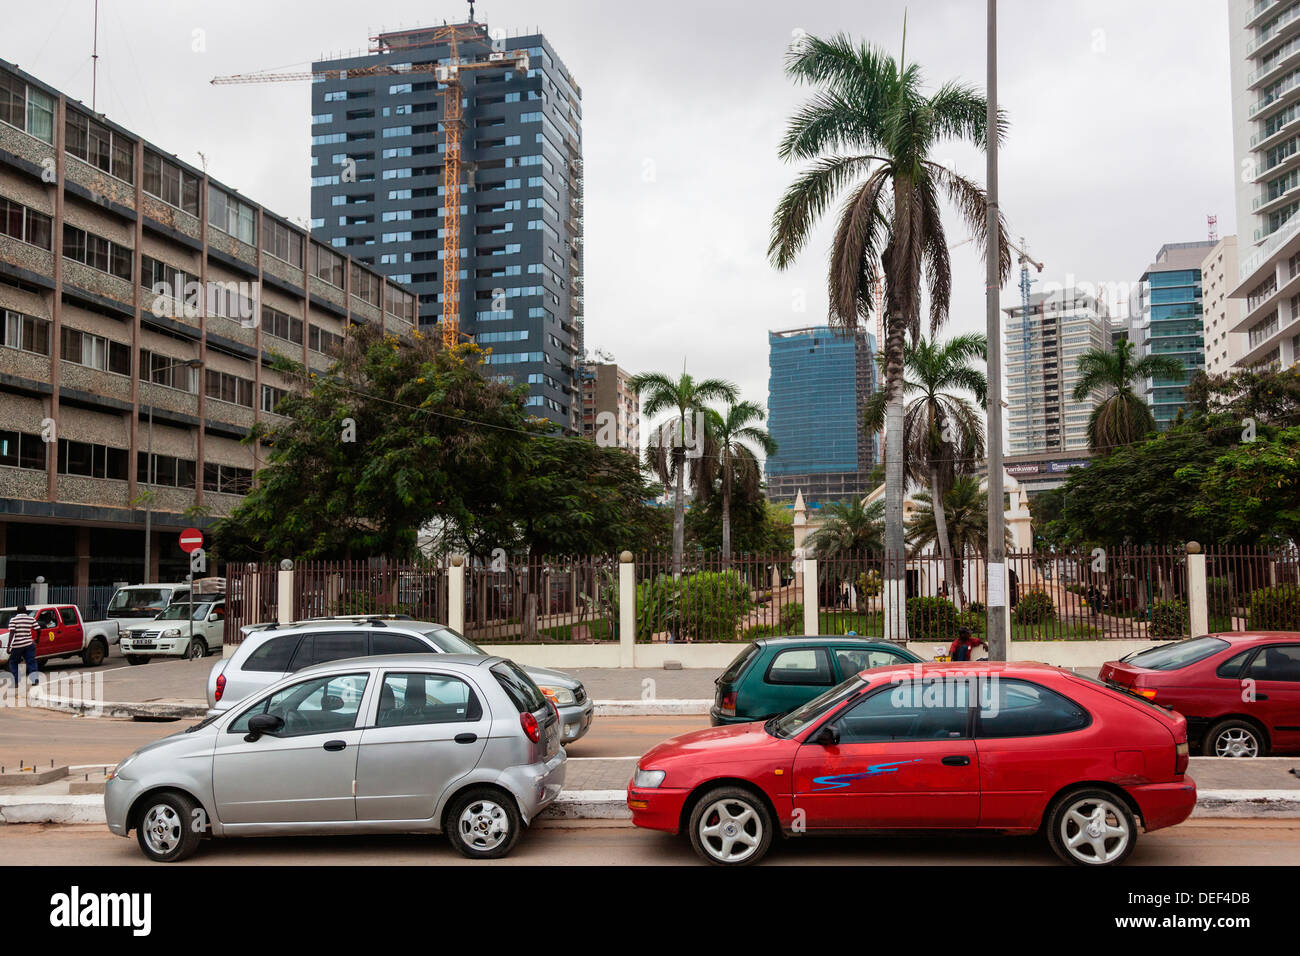 Africa, Angola, Luanda. Traffic in city center. - Stock Image